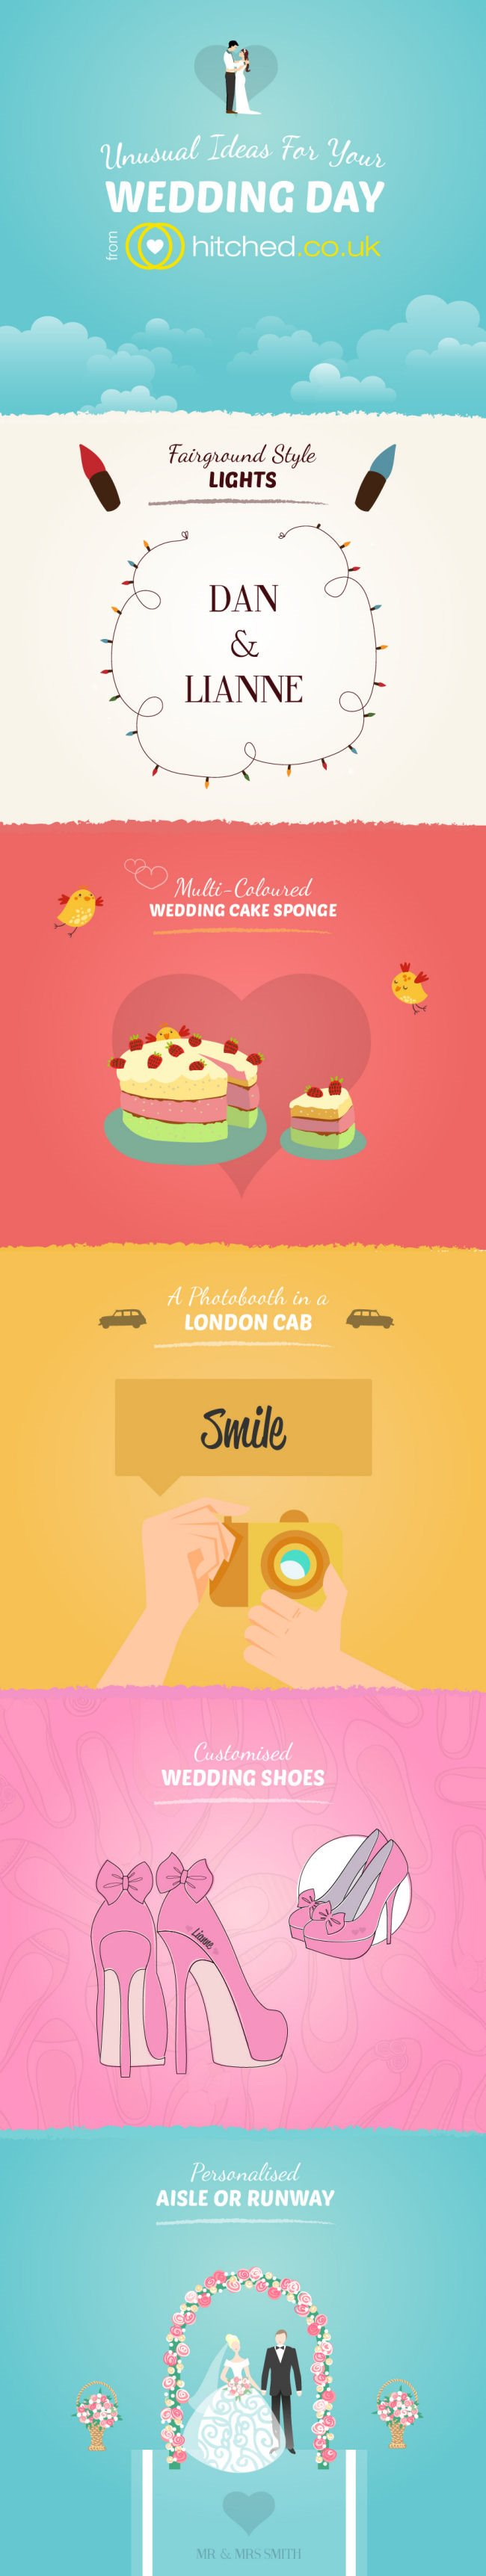 Unusual Ideas for your wedding day Infographic